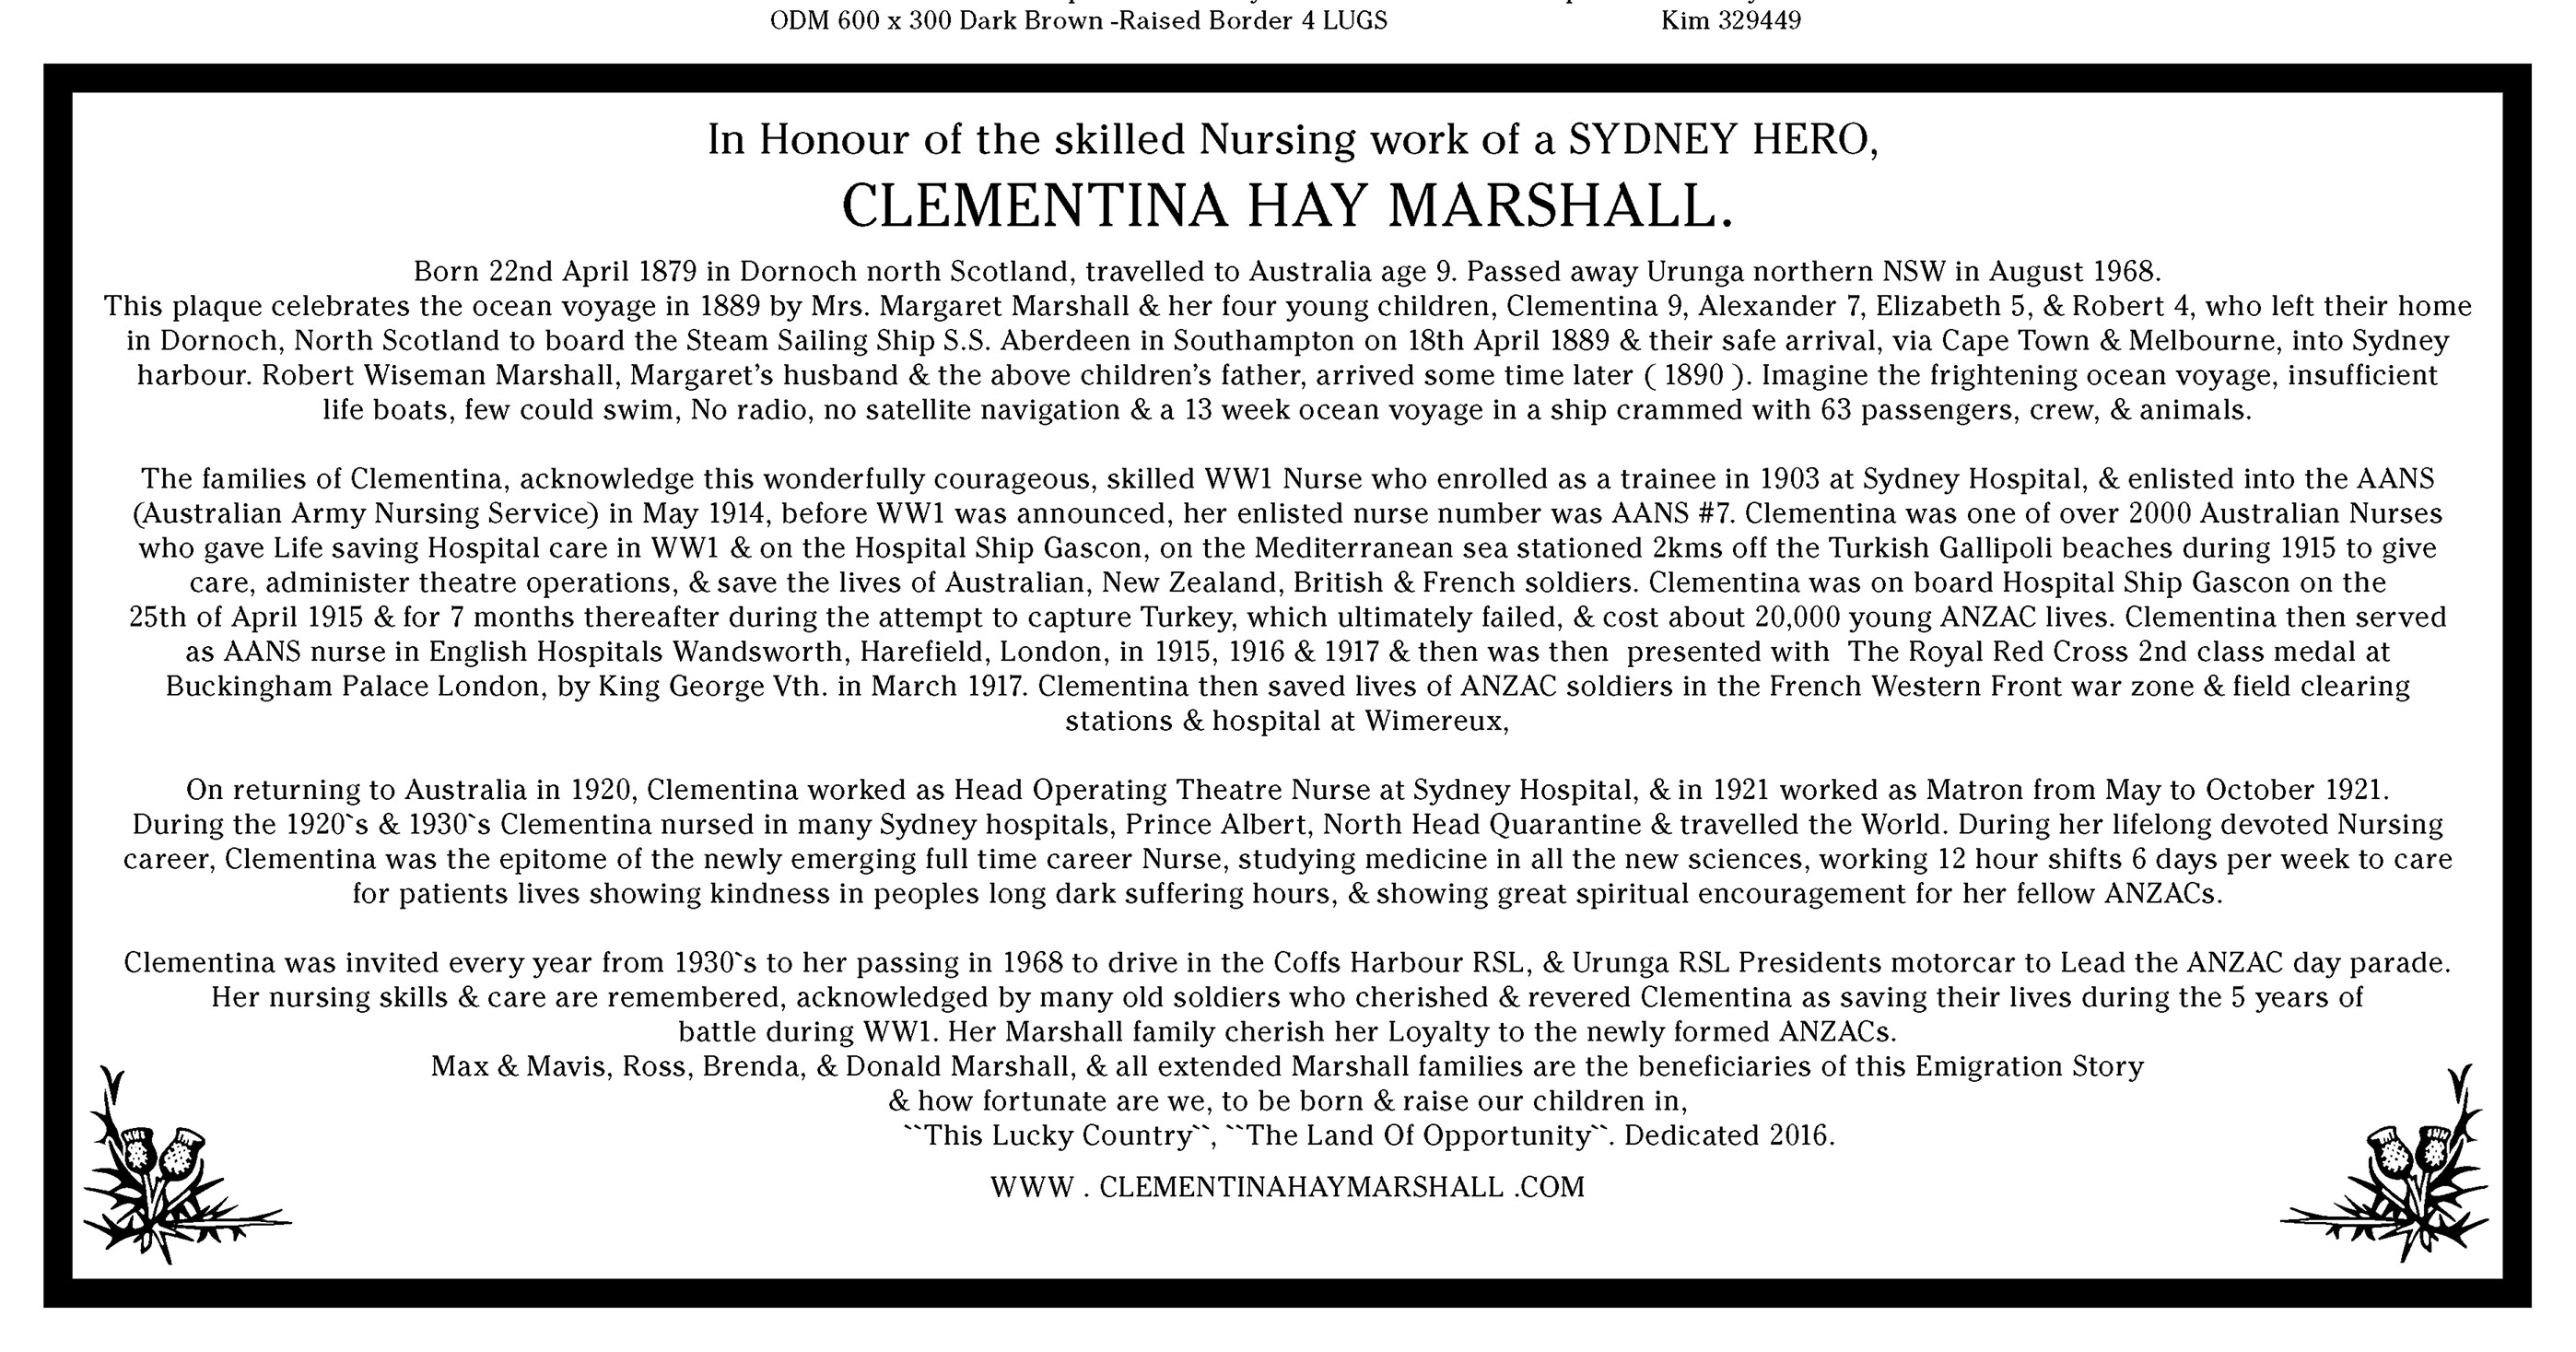 BRONZE PLATE FOR CLEMENTINA MARSHALL URUNGA GRAVE SITE